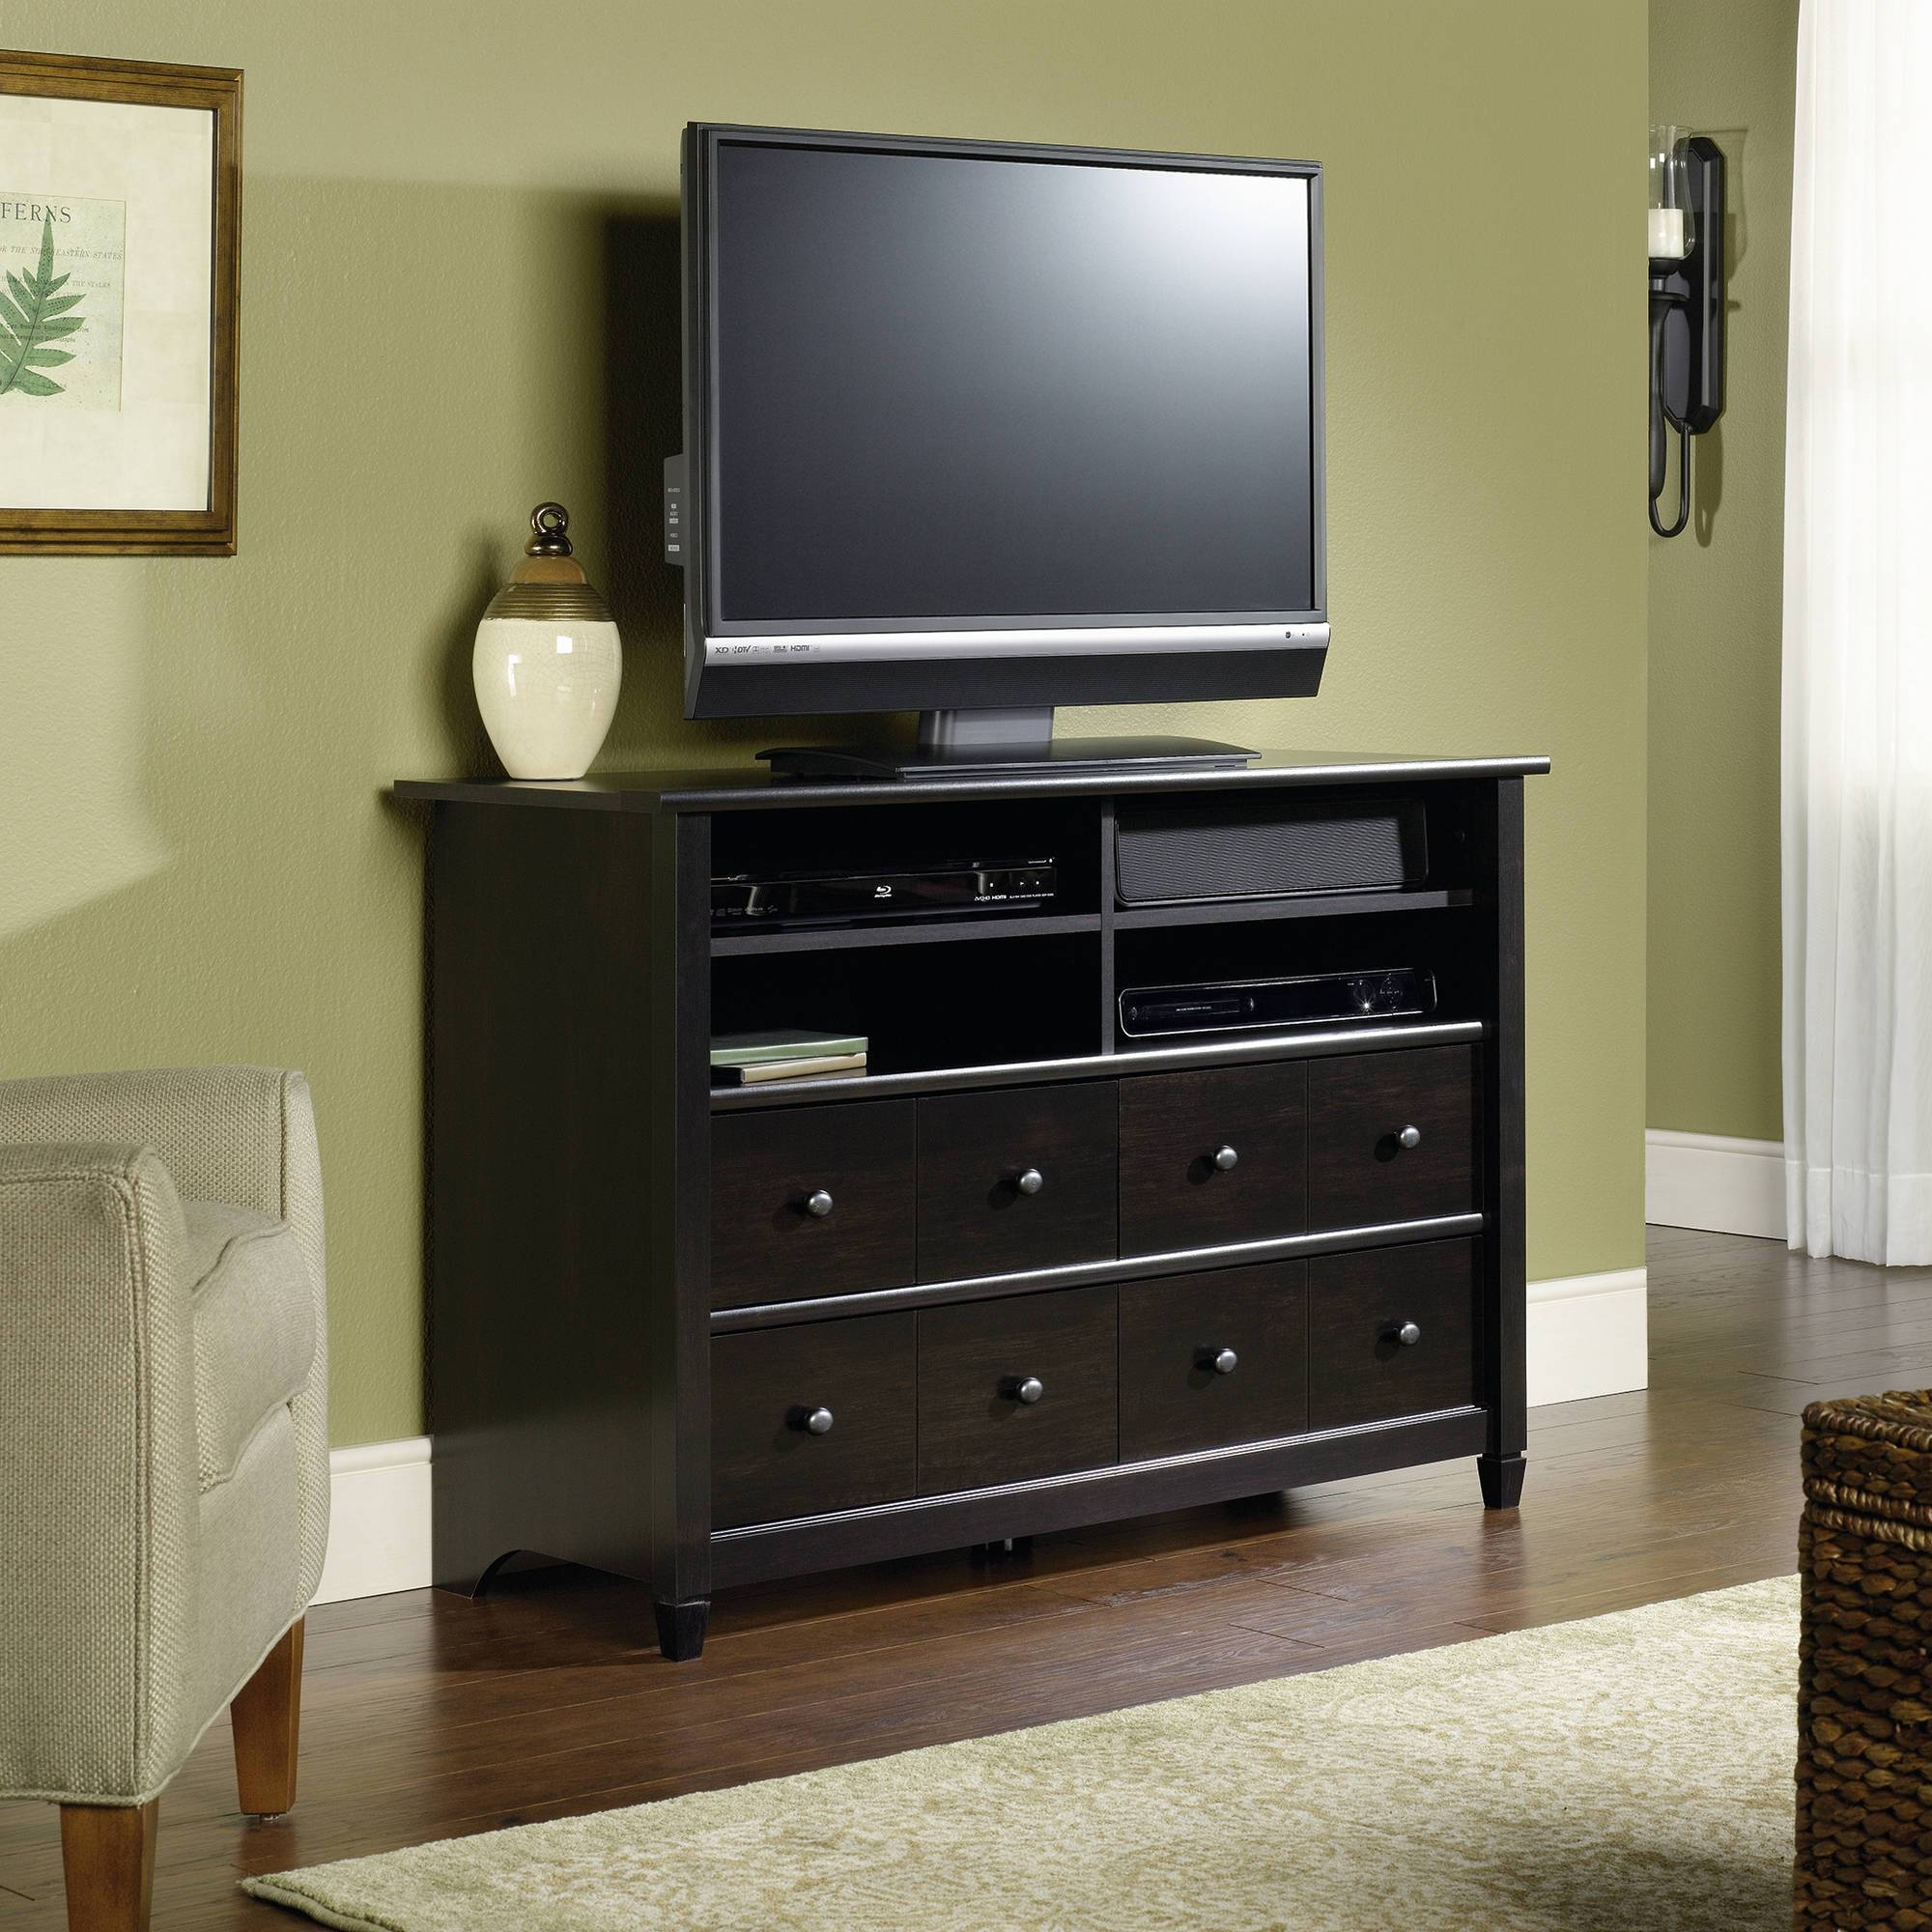 "Sauder Edge Water 45"" Highboy Tv Stand In Estate Black - Walmart with regard to Black Tv Cabinets With Drawers (Image 9 of 15)"